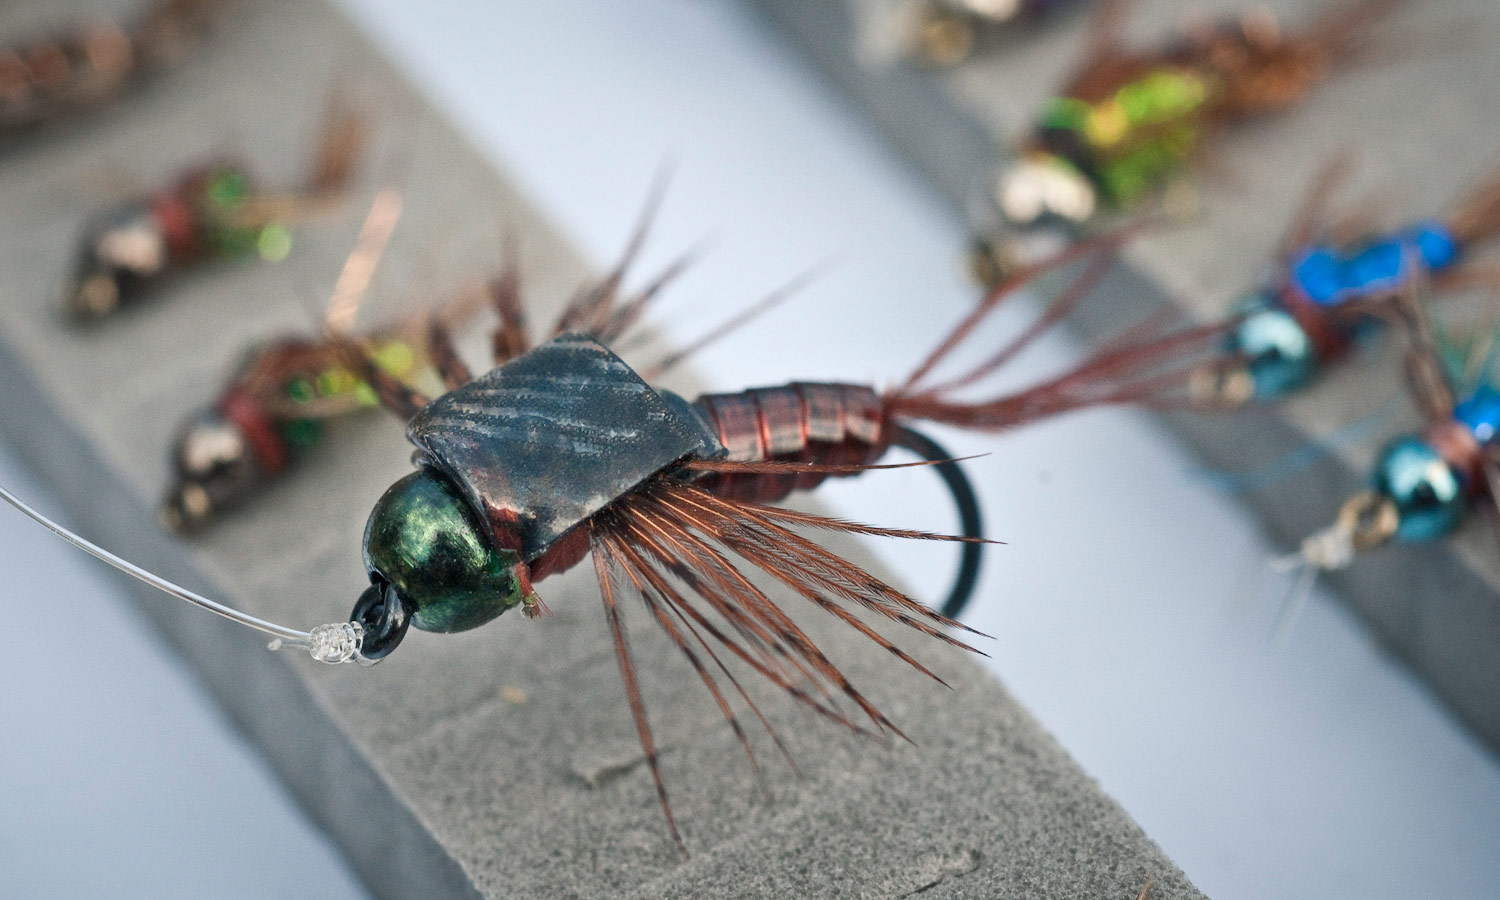 Flathead mayfly nymphs rule fly fishing gink and for Fly fishing nymphs